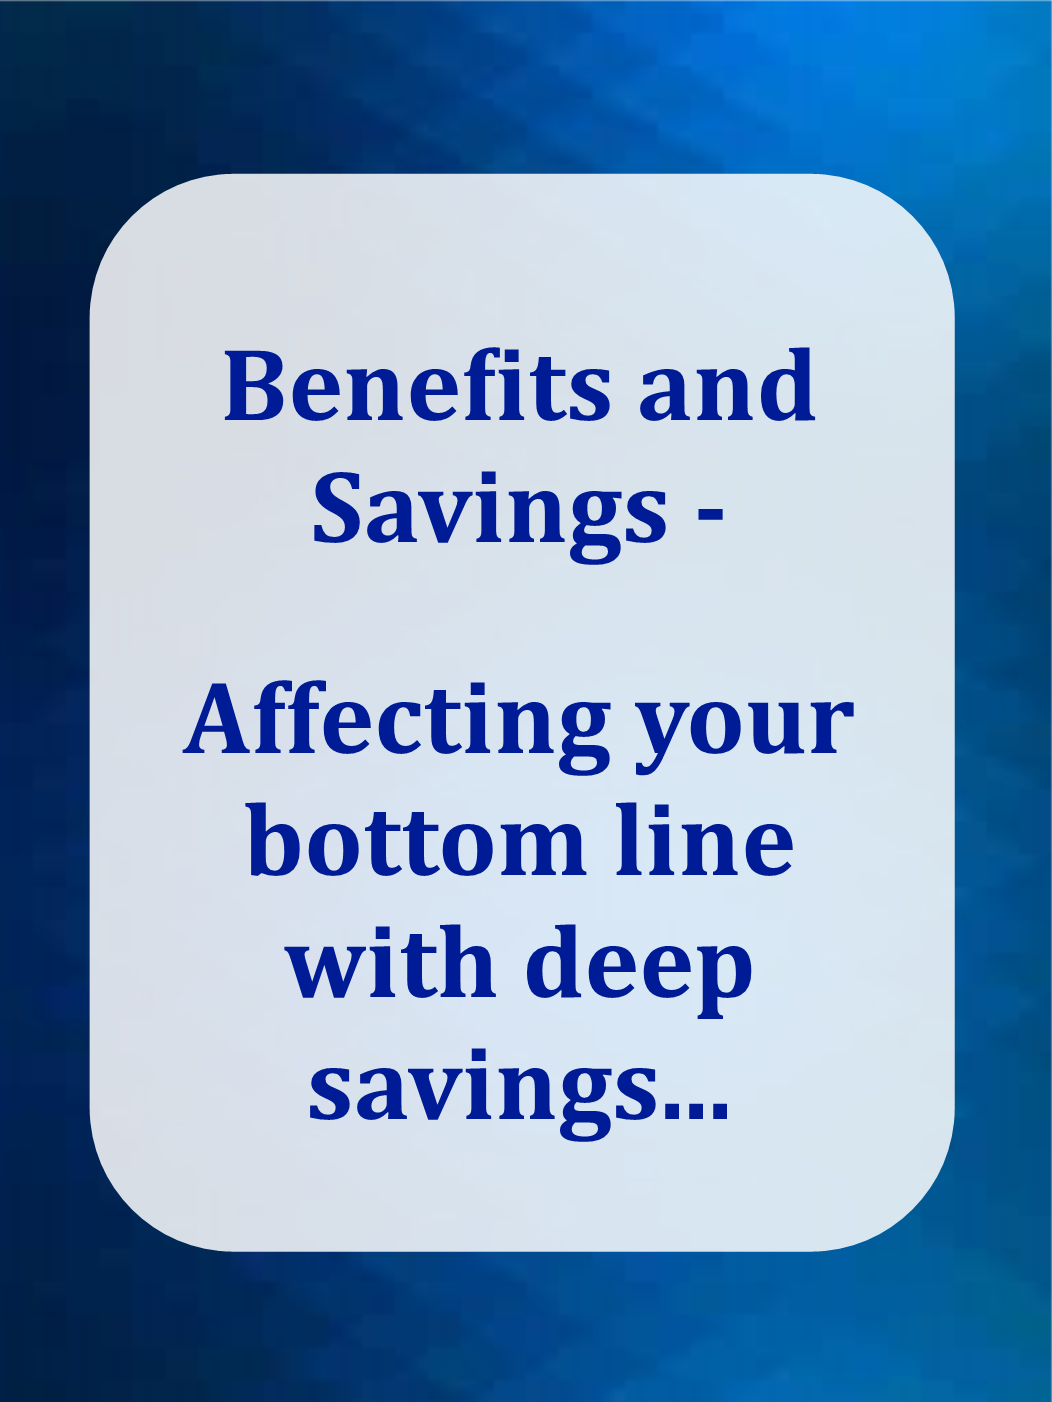 Benefits-and-Savings(1)-w675.png